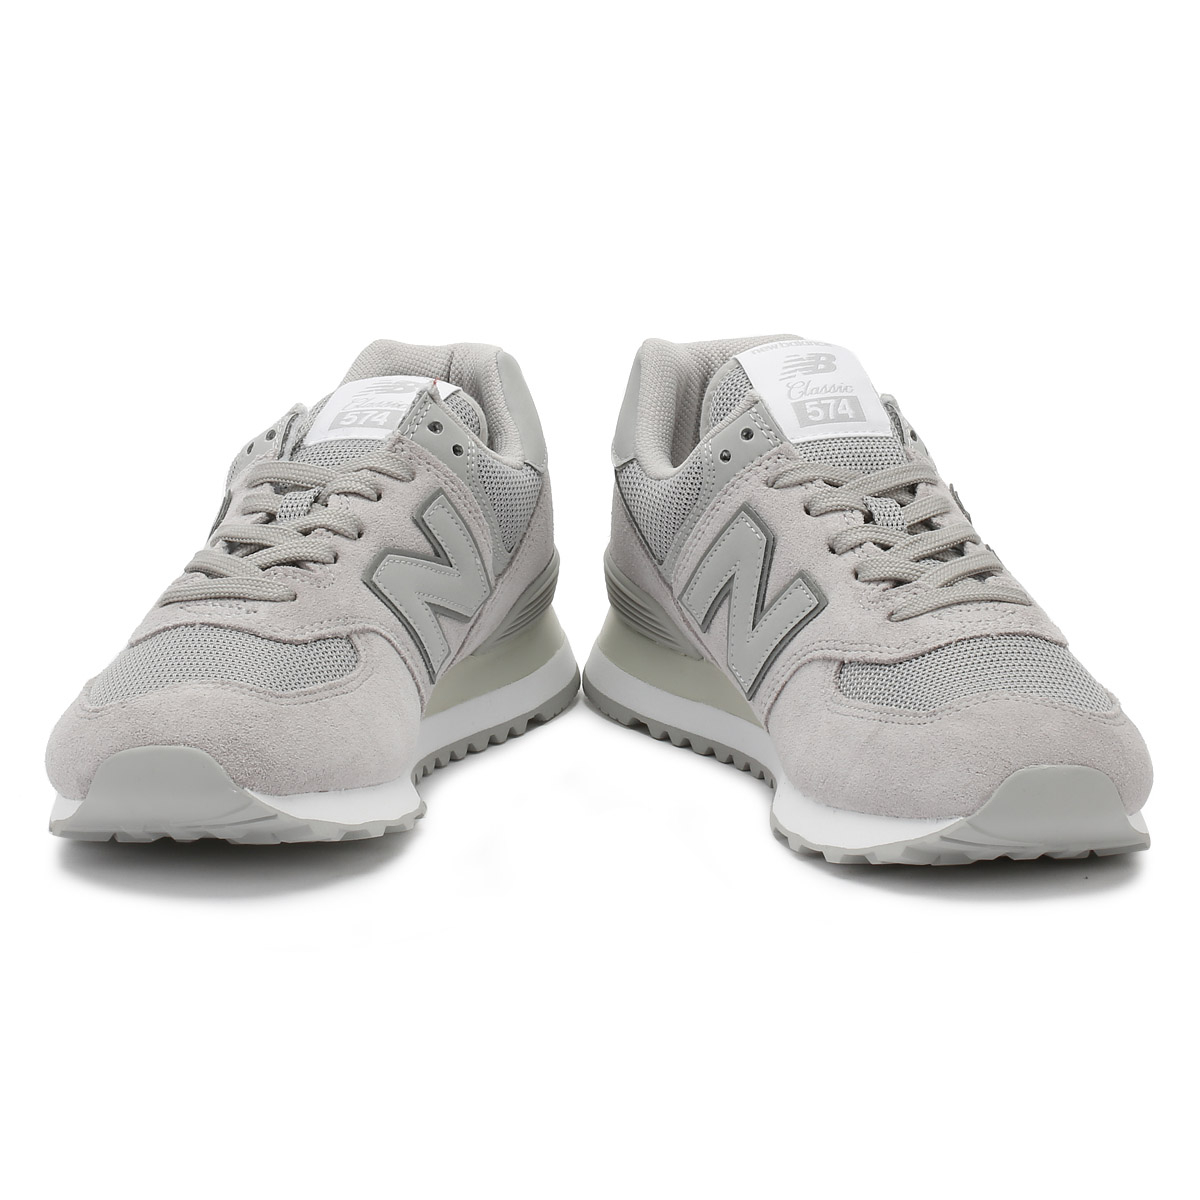 New New New Balance Mens Trainers Rain Cloud Grey 574 Classic Lace Up Sport Casual Shoes a9e6f8